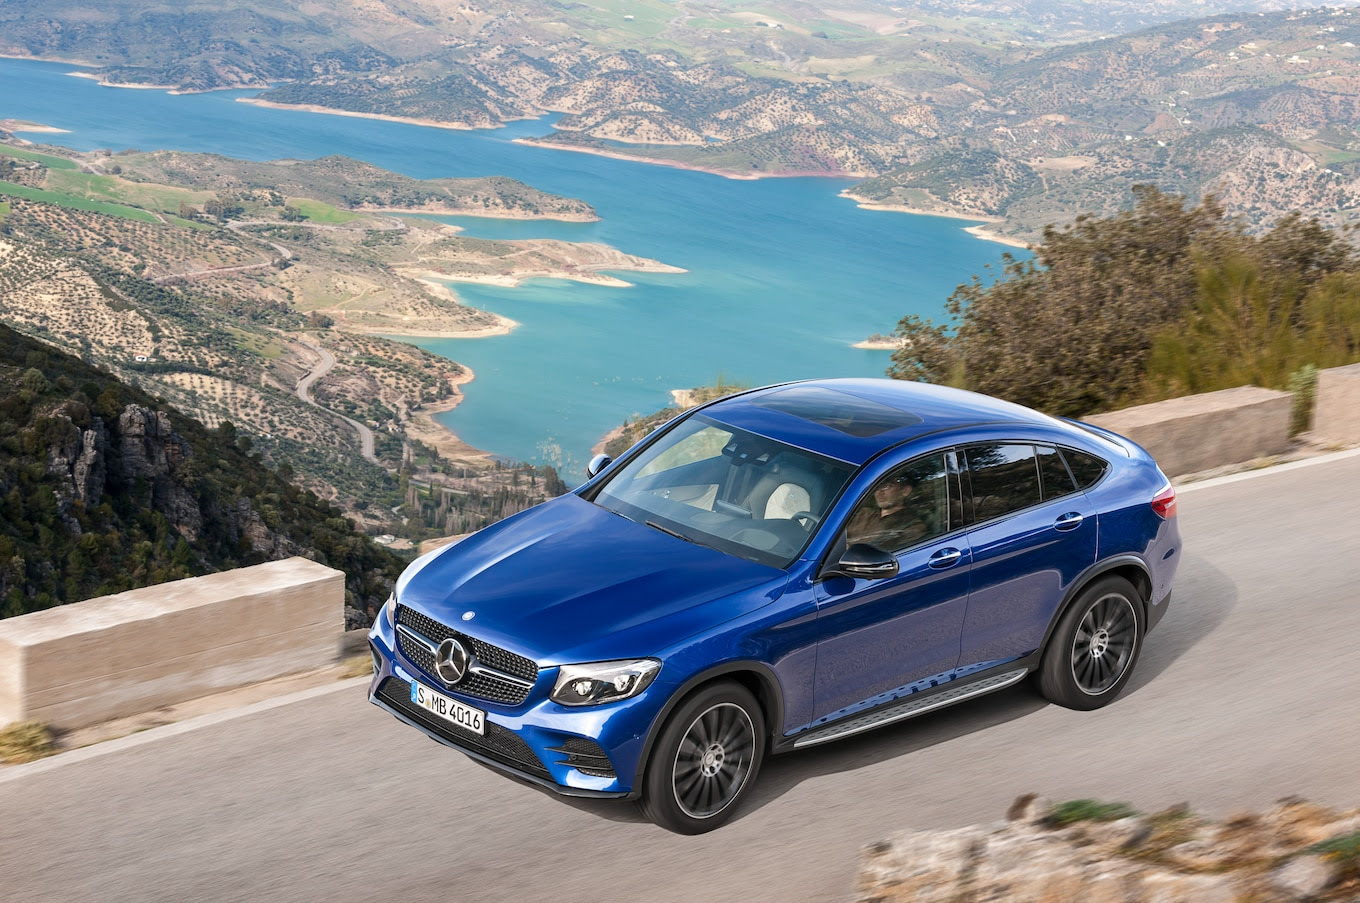 2017 Mercedes-Benz GLC Coupe First Look Review - Motor Trend